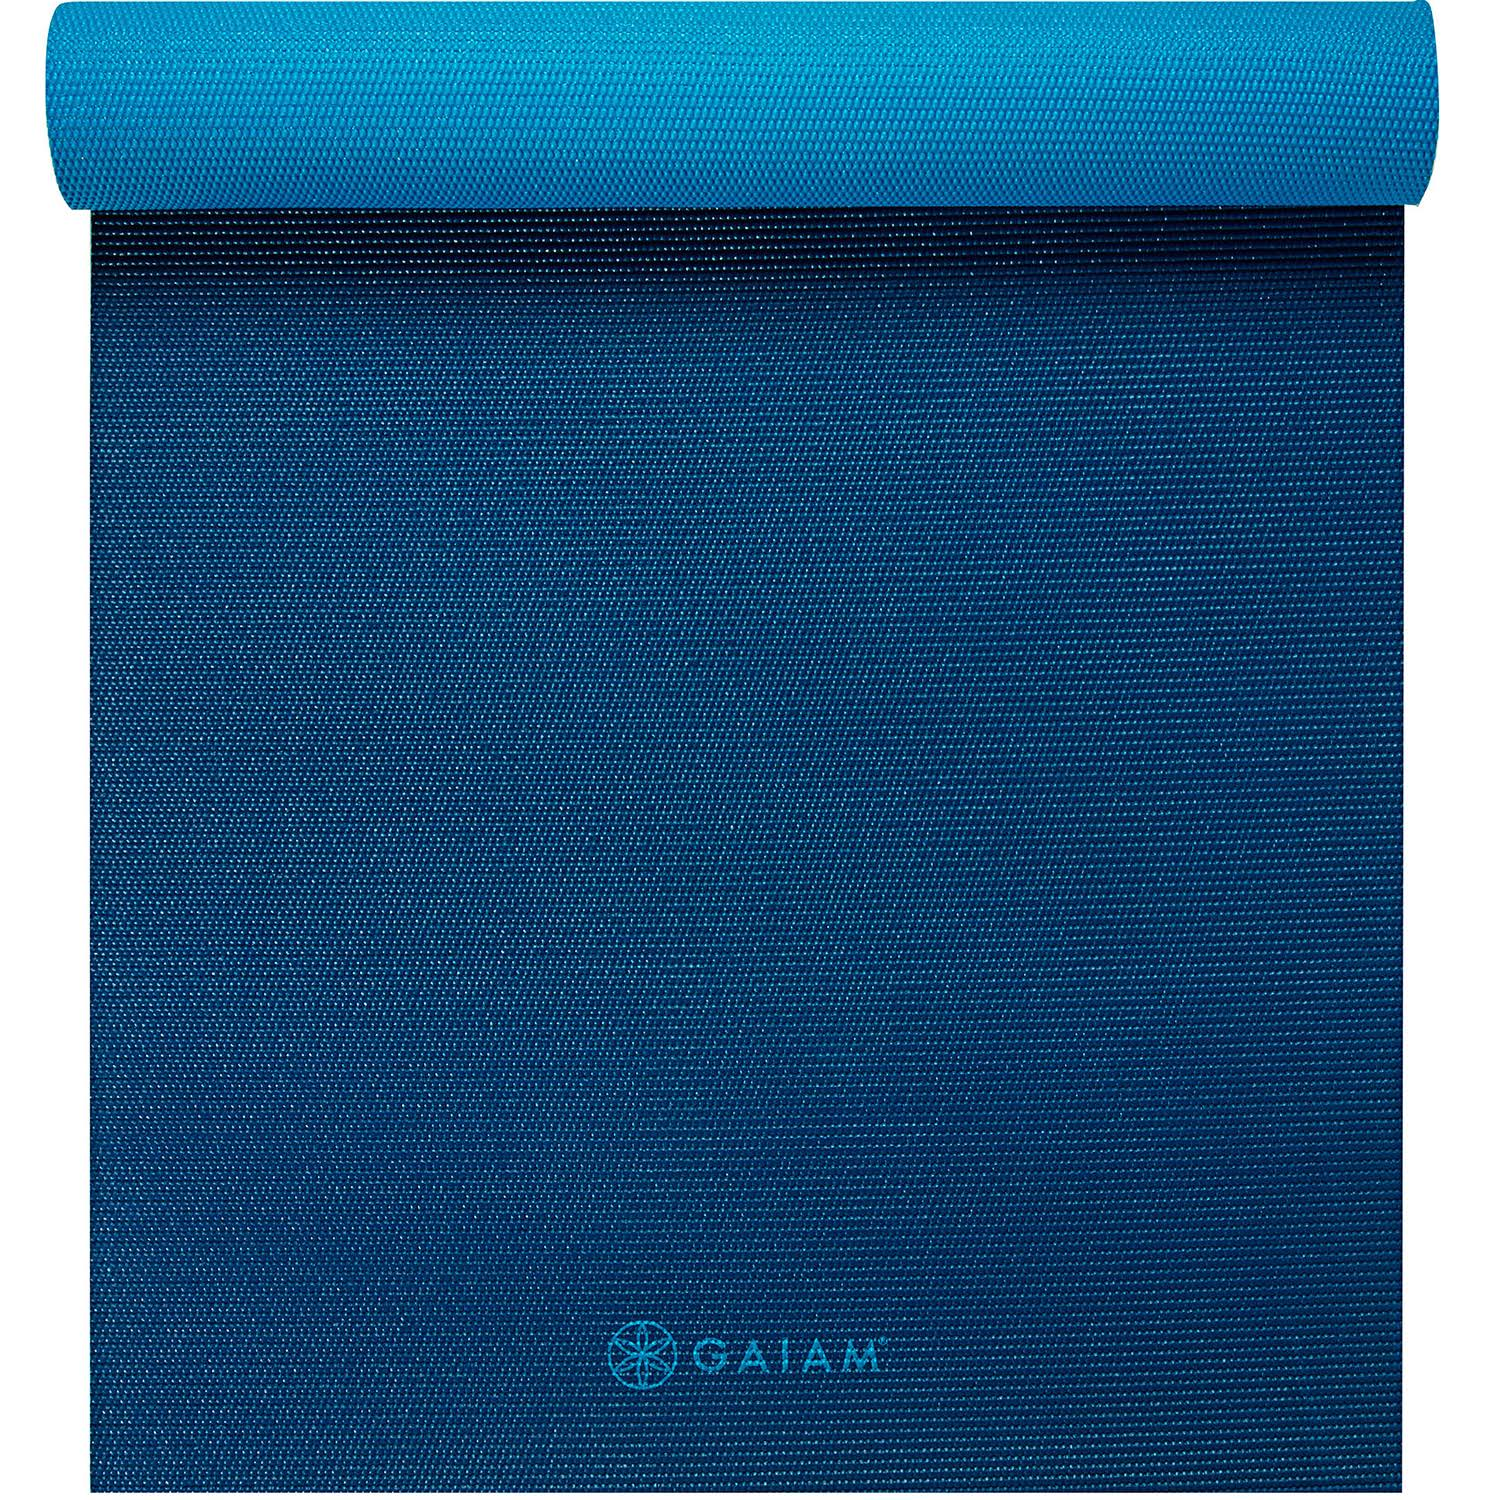 Gaiam Premium Reversible Yoga Mat - Blue, 5mm thick